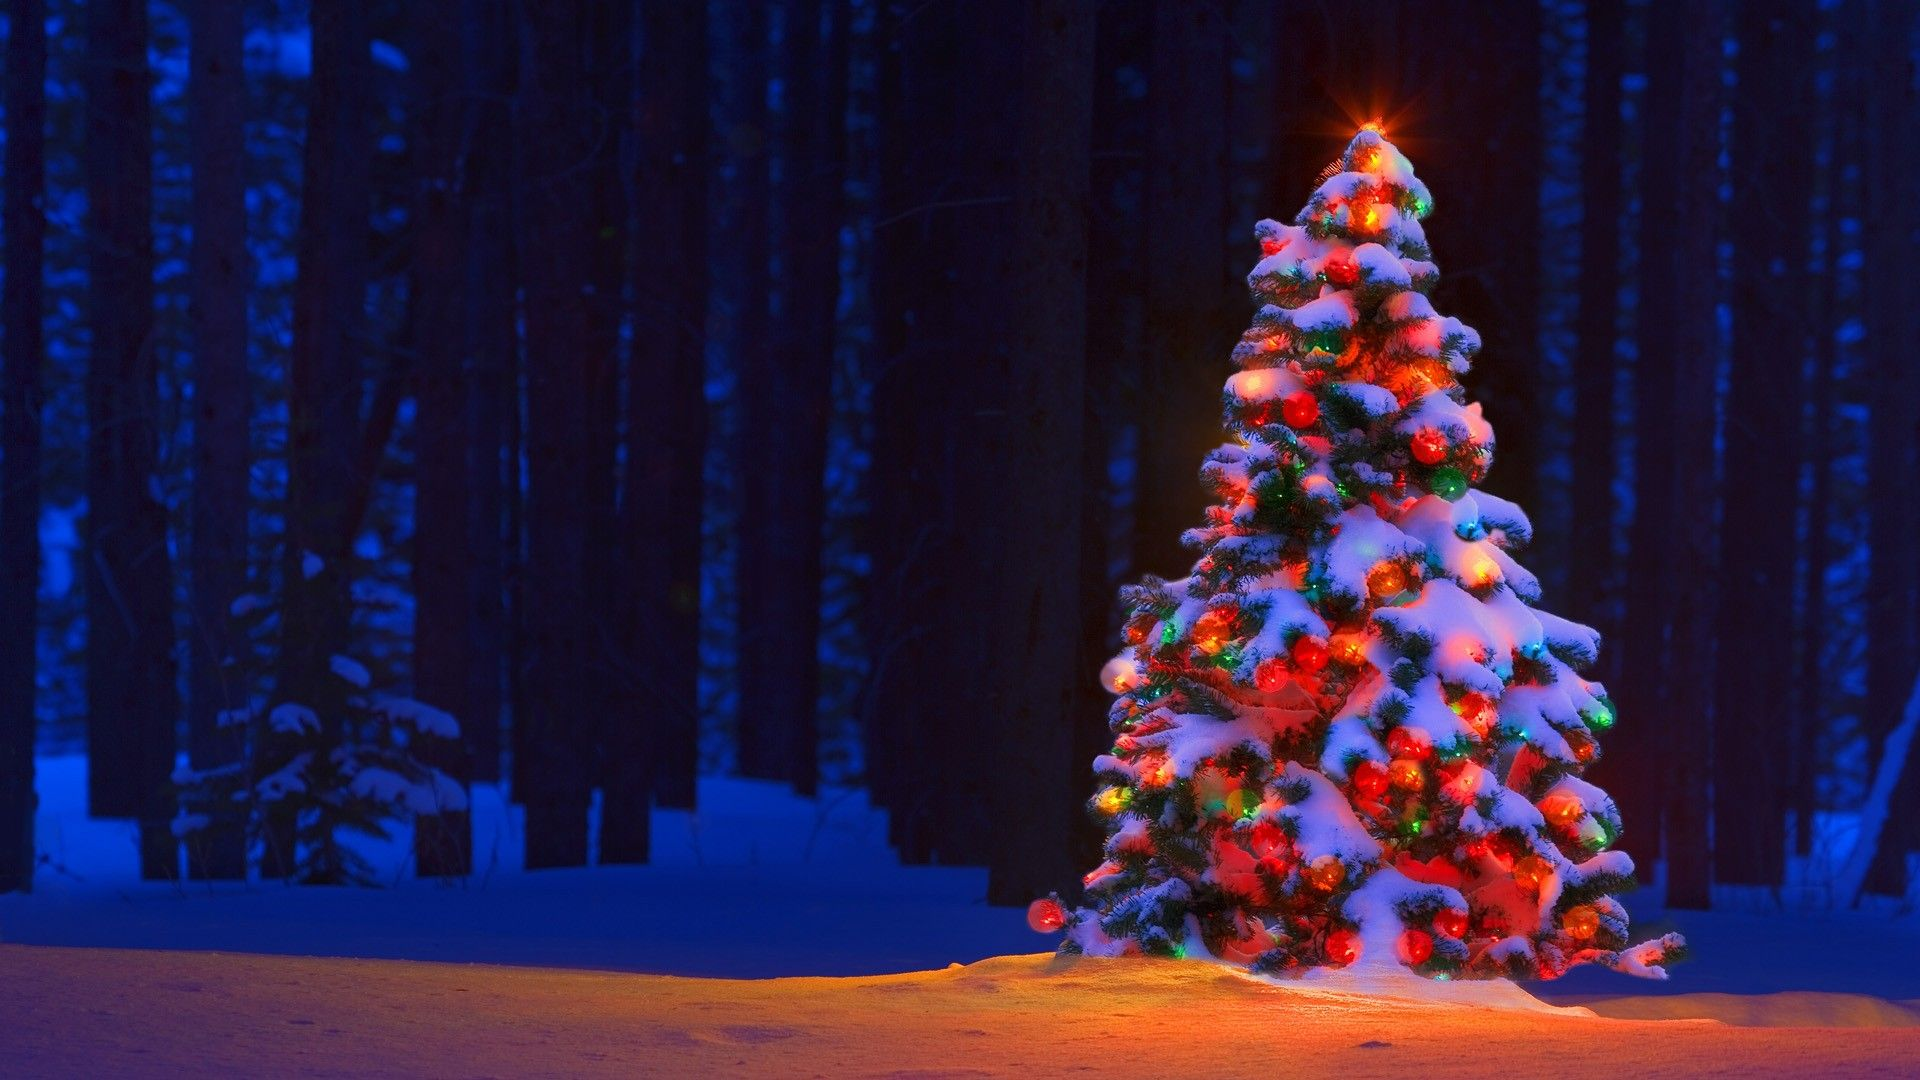 50 beautiful christmas tree wallpapers | background งานคอม